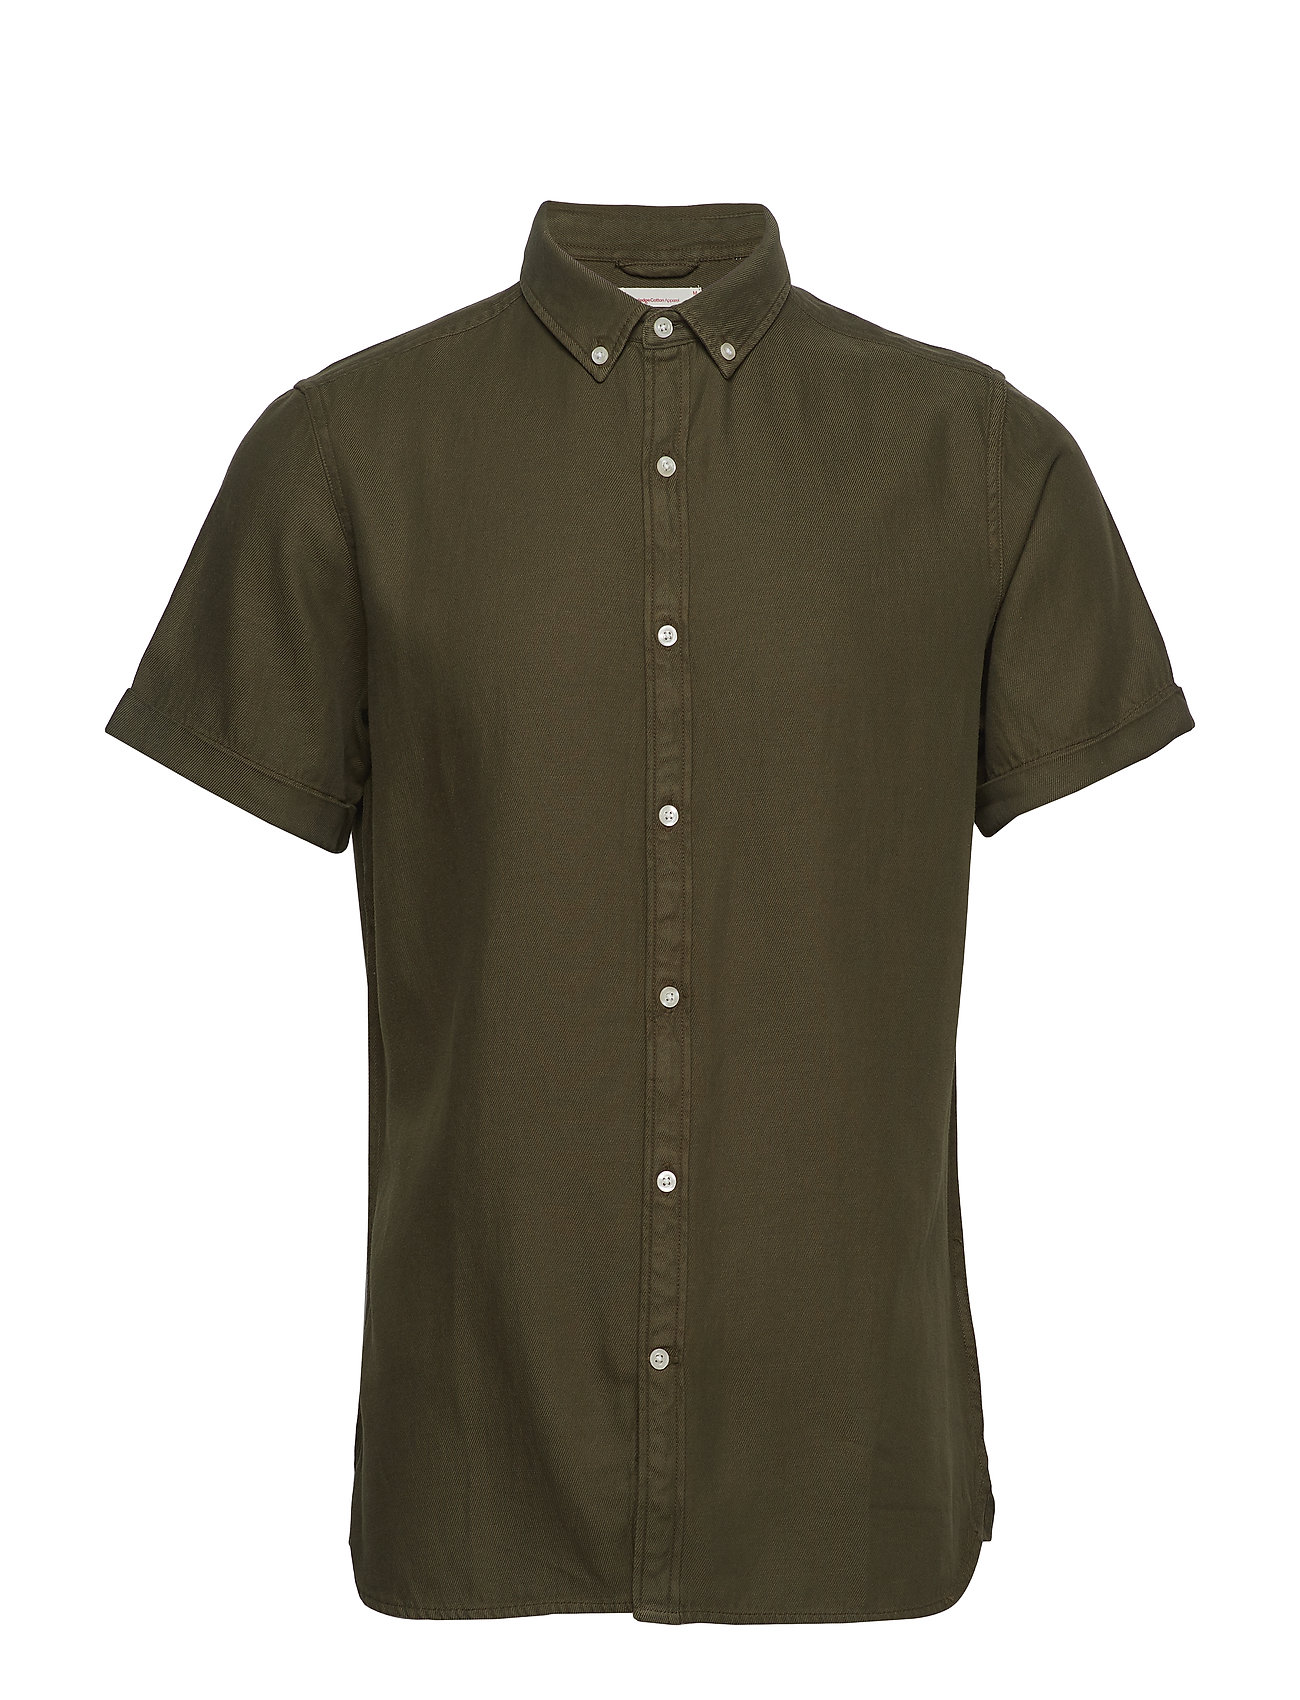 Knowledge Cotton Apparel Short sleeve twill shirt/Vegan